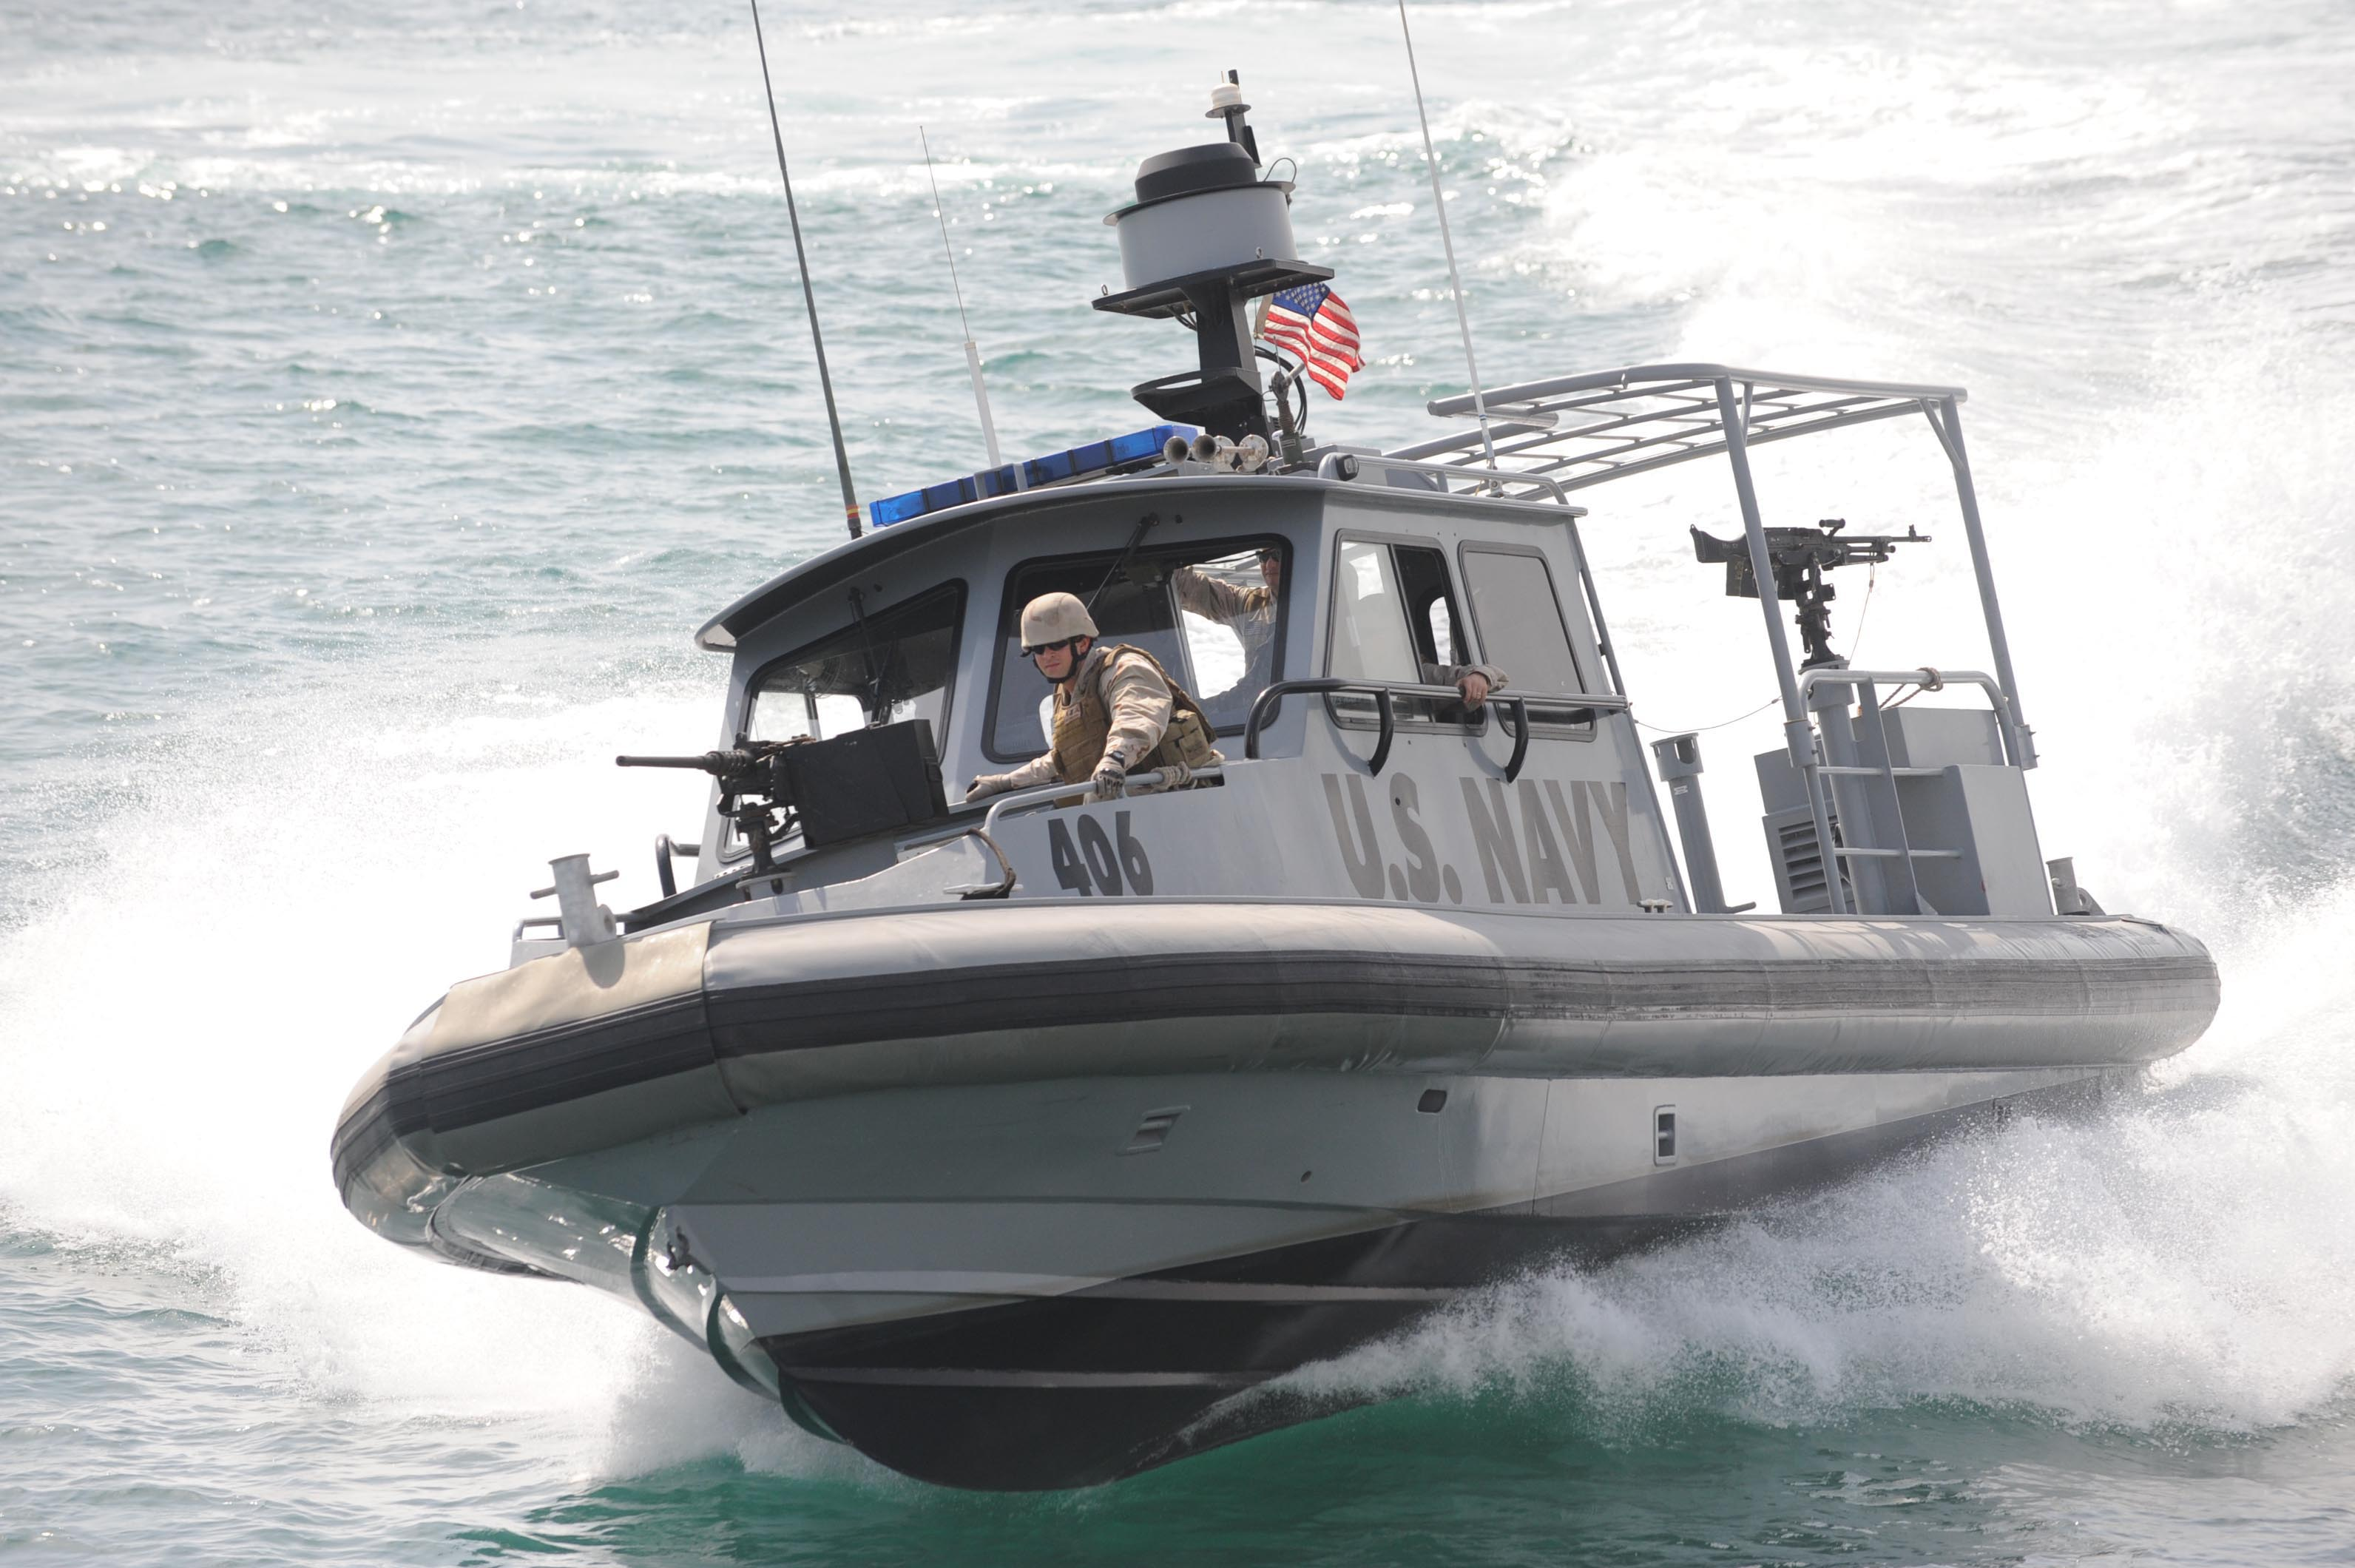 http://upload.wikimedia.org/wikipedia/commons/9/96/US_Navy_090905-N-1452H-516_U.S._Navy_and_U.S._Coast_Guard_personnel_operate_harbor_security,_force_protection_boats_assigned_to_Maritime_Expeditionary_Security_Squadron_(MSRON)_5_as_Combined_Task_Group_(CTG)_56.5_to_provide_por.jpg